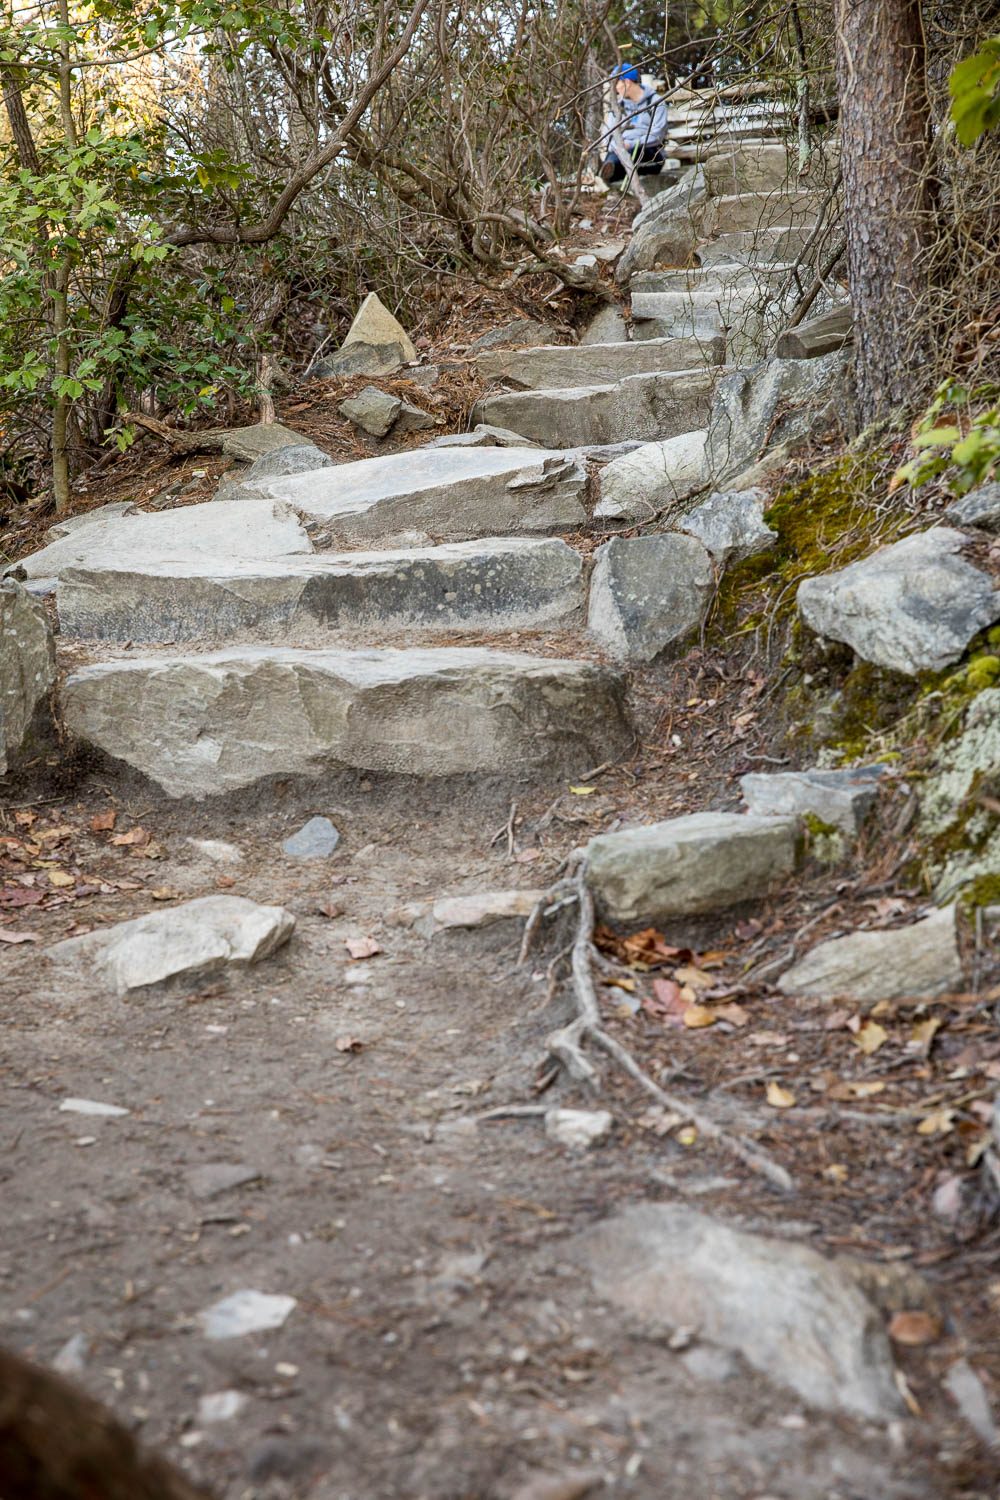 Just a sampling of stairs. These stairs up to the summit are no joke.